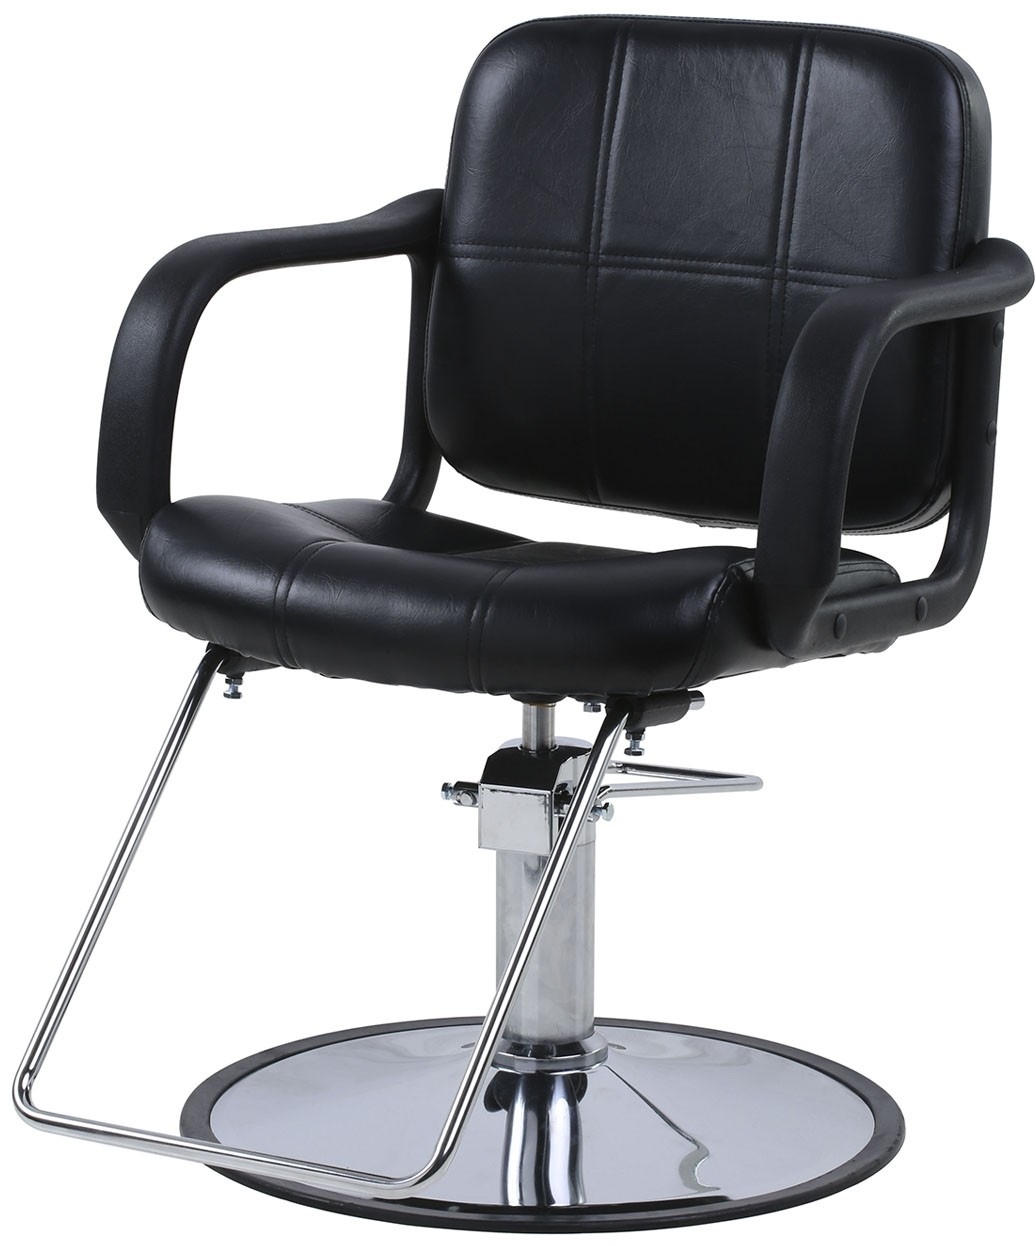 Hydraulic Salon Styling Chair Chris Styling Chair Amp Pump